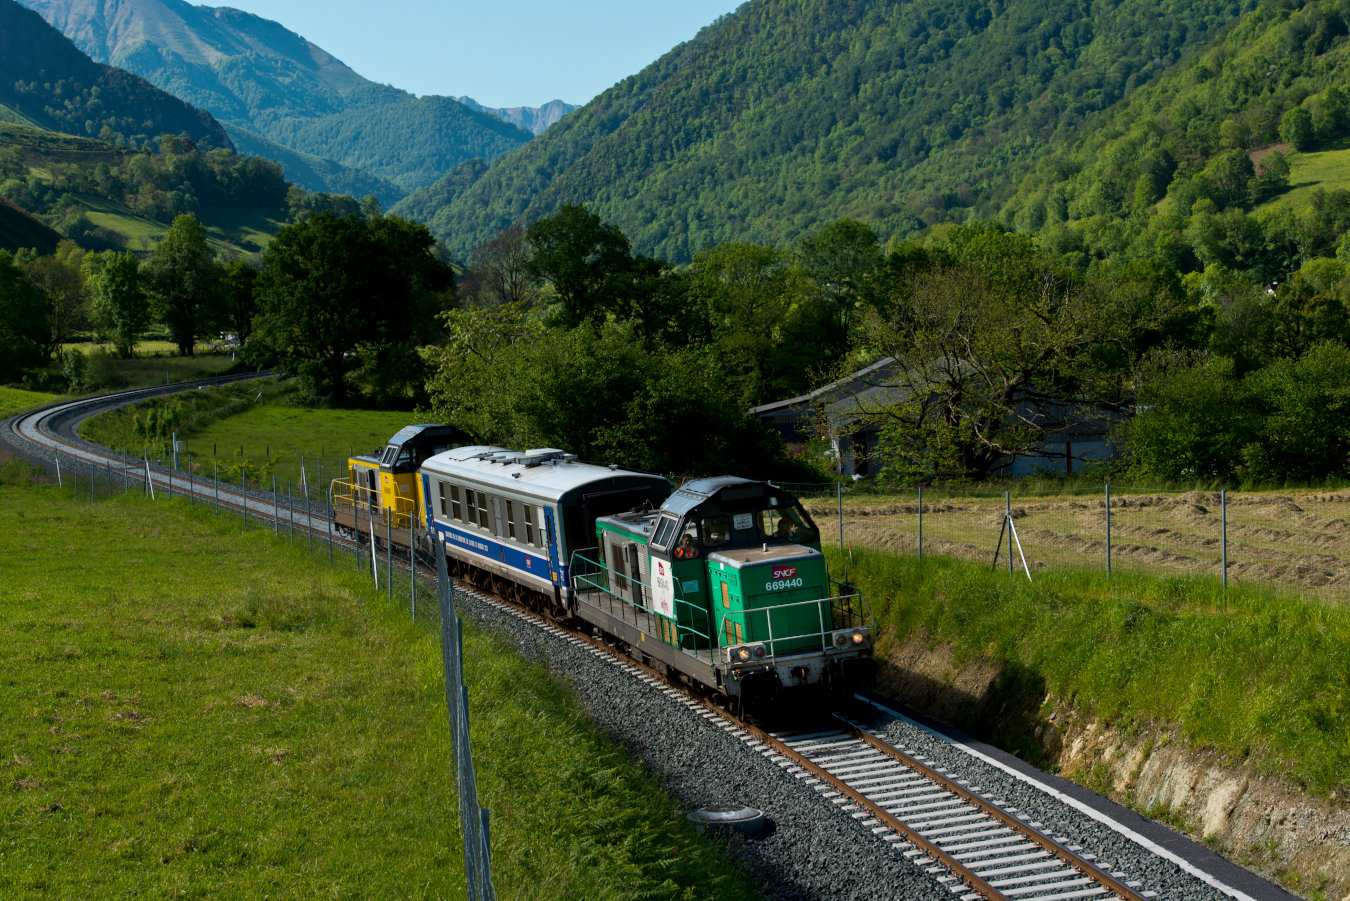 Restoration of rail traffic between Oloron and Bedous